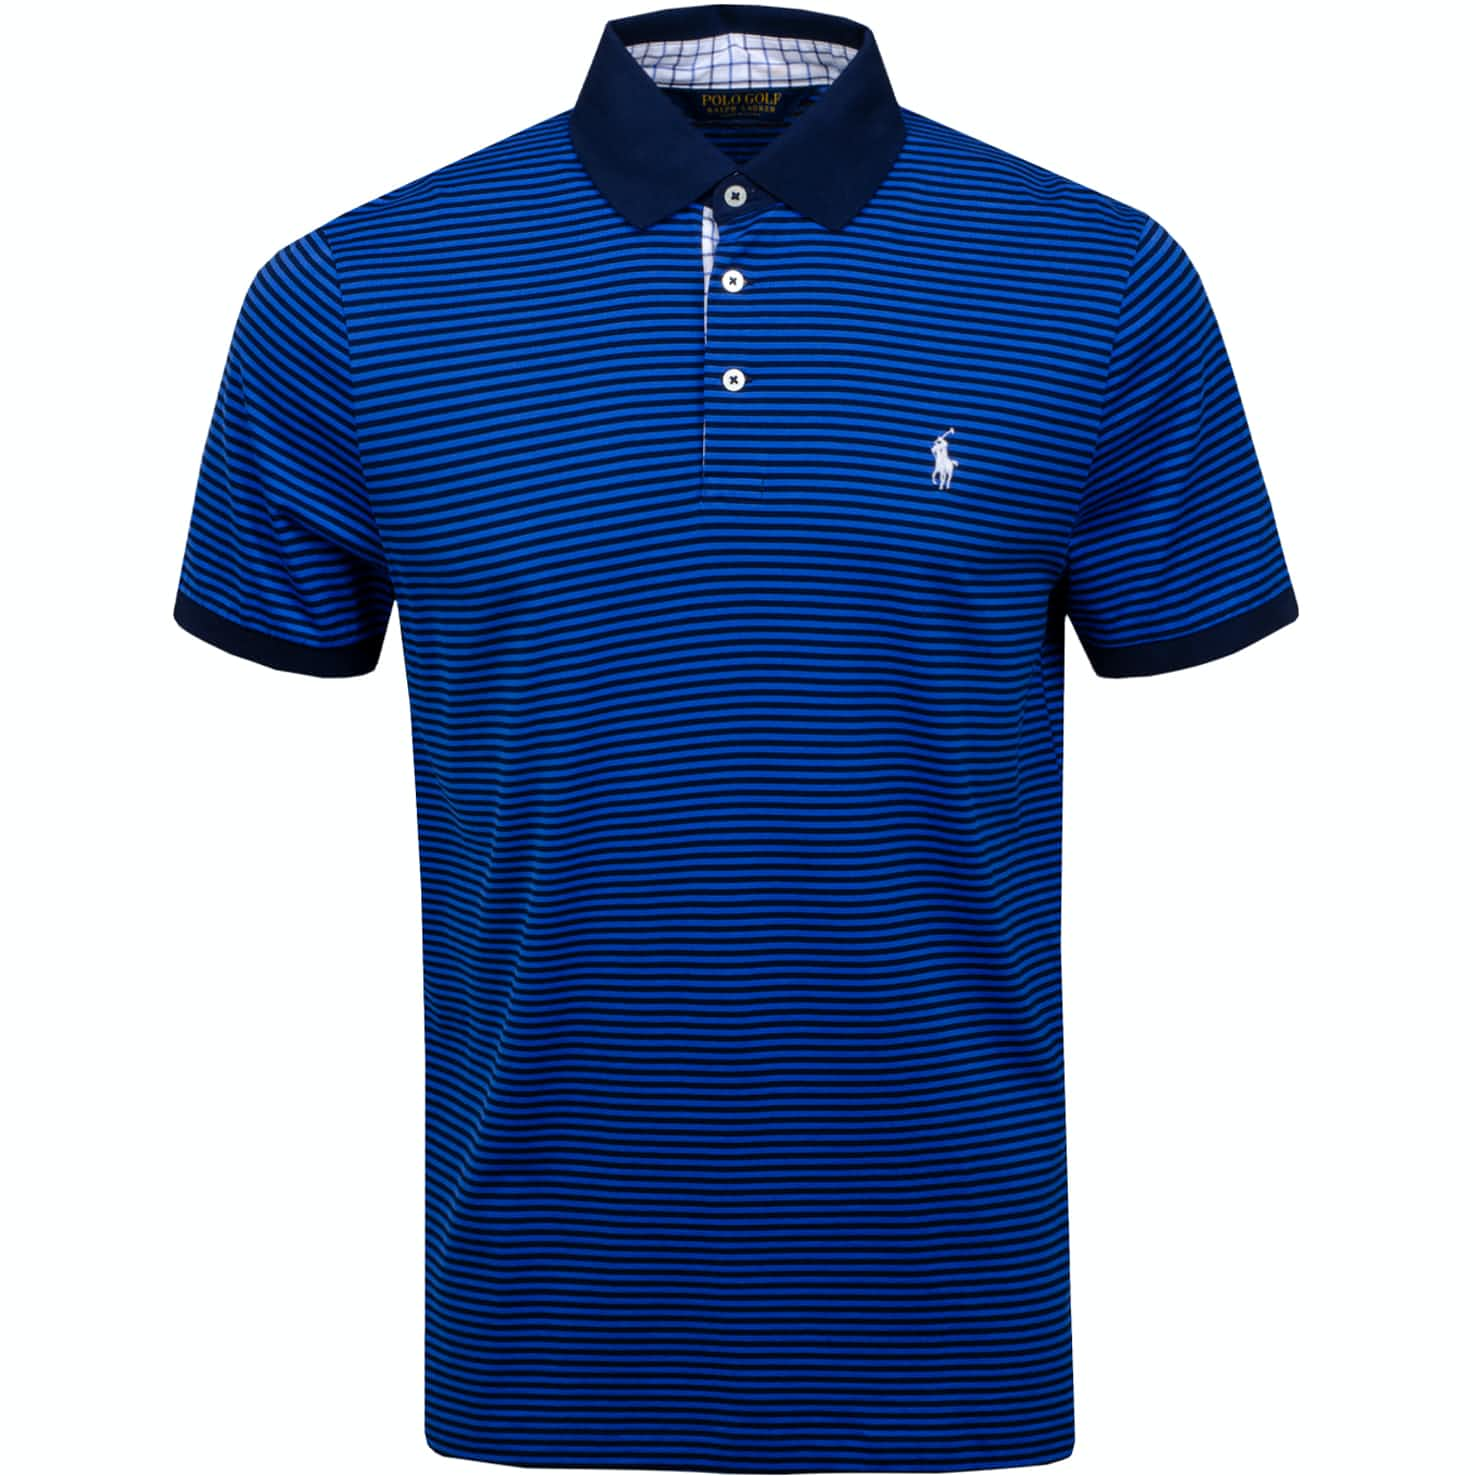 YD Soft Lisle Polo French Navy/New Iris Blue - AW19